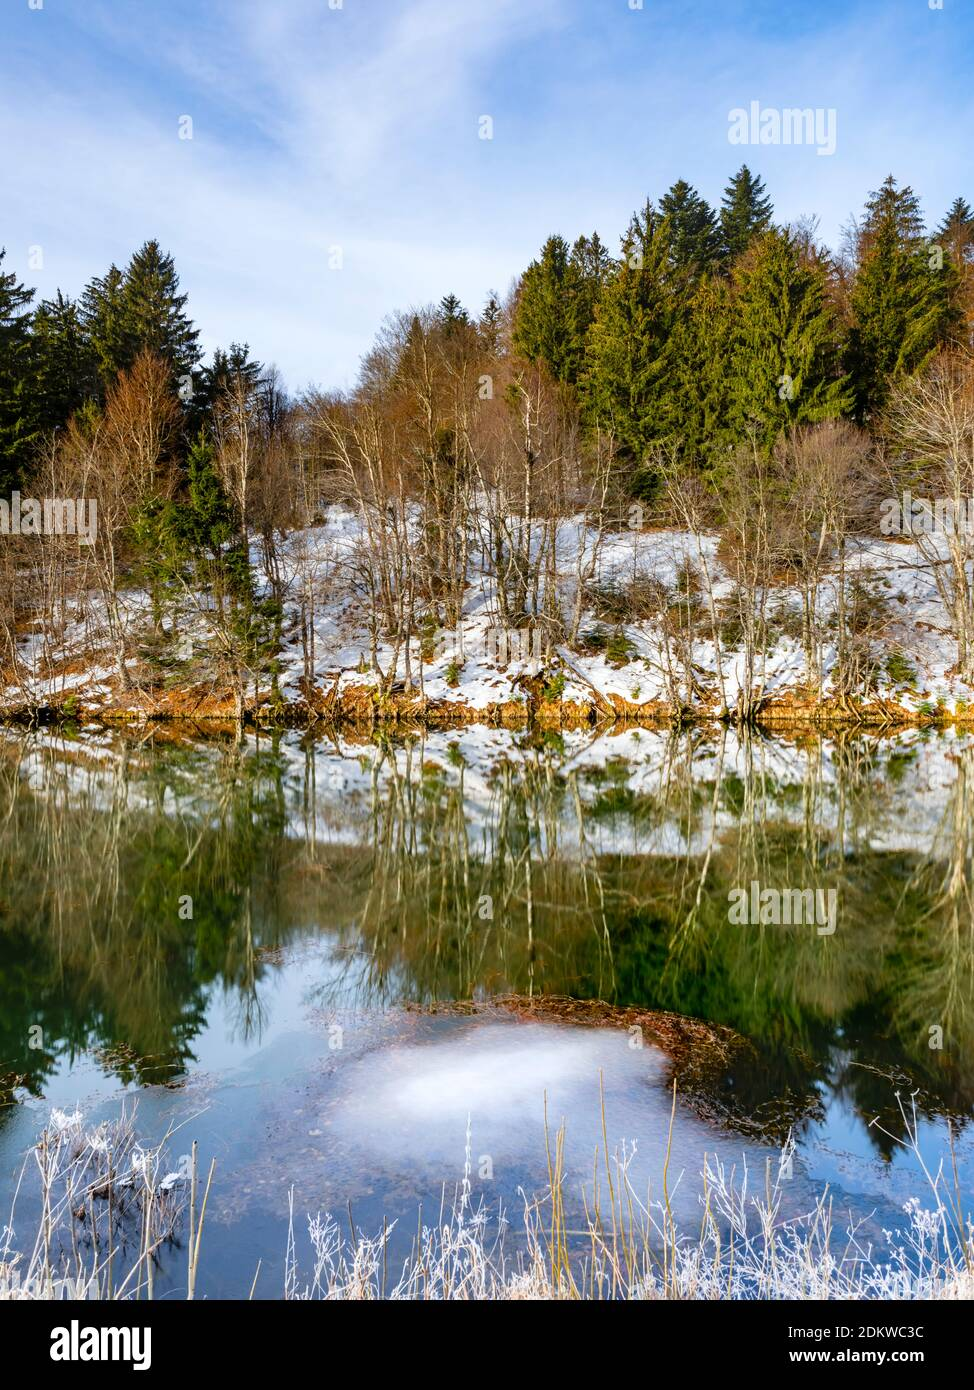 Quit morning on lake Mrzla vodica in Gorski kotar county in Croatia Europe patch of ice icy water surface is still visible Stock Photo